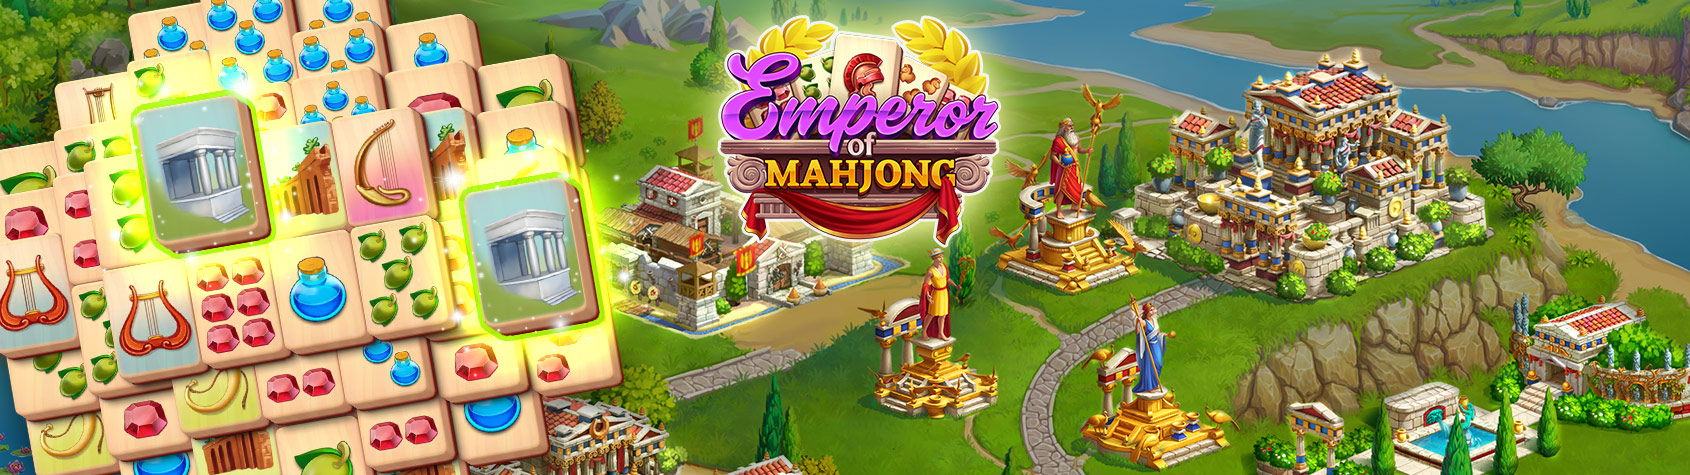 Emperor of Mahjong: Match tiles & restore a city